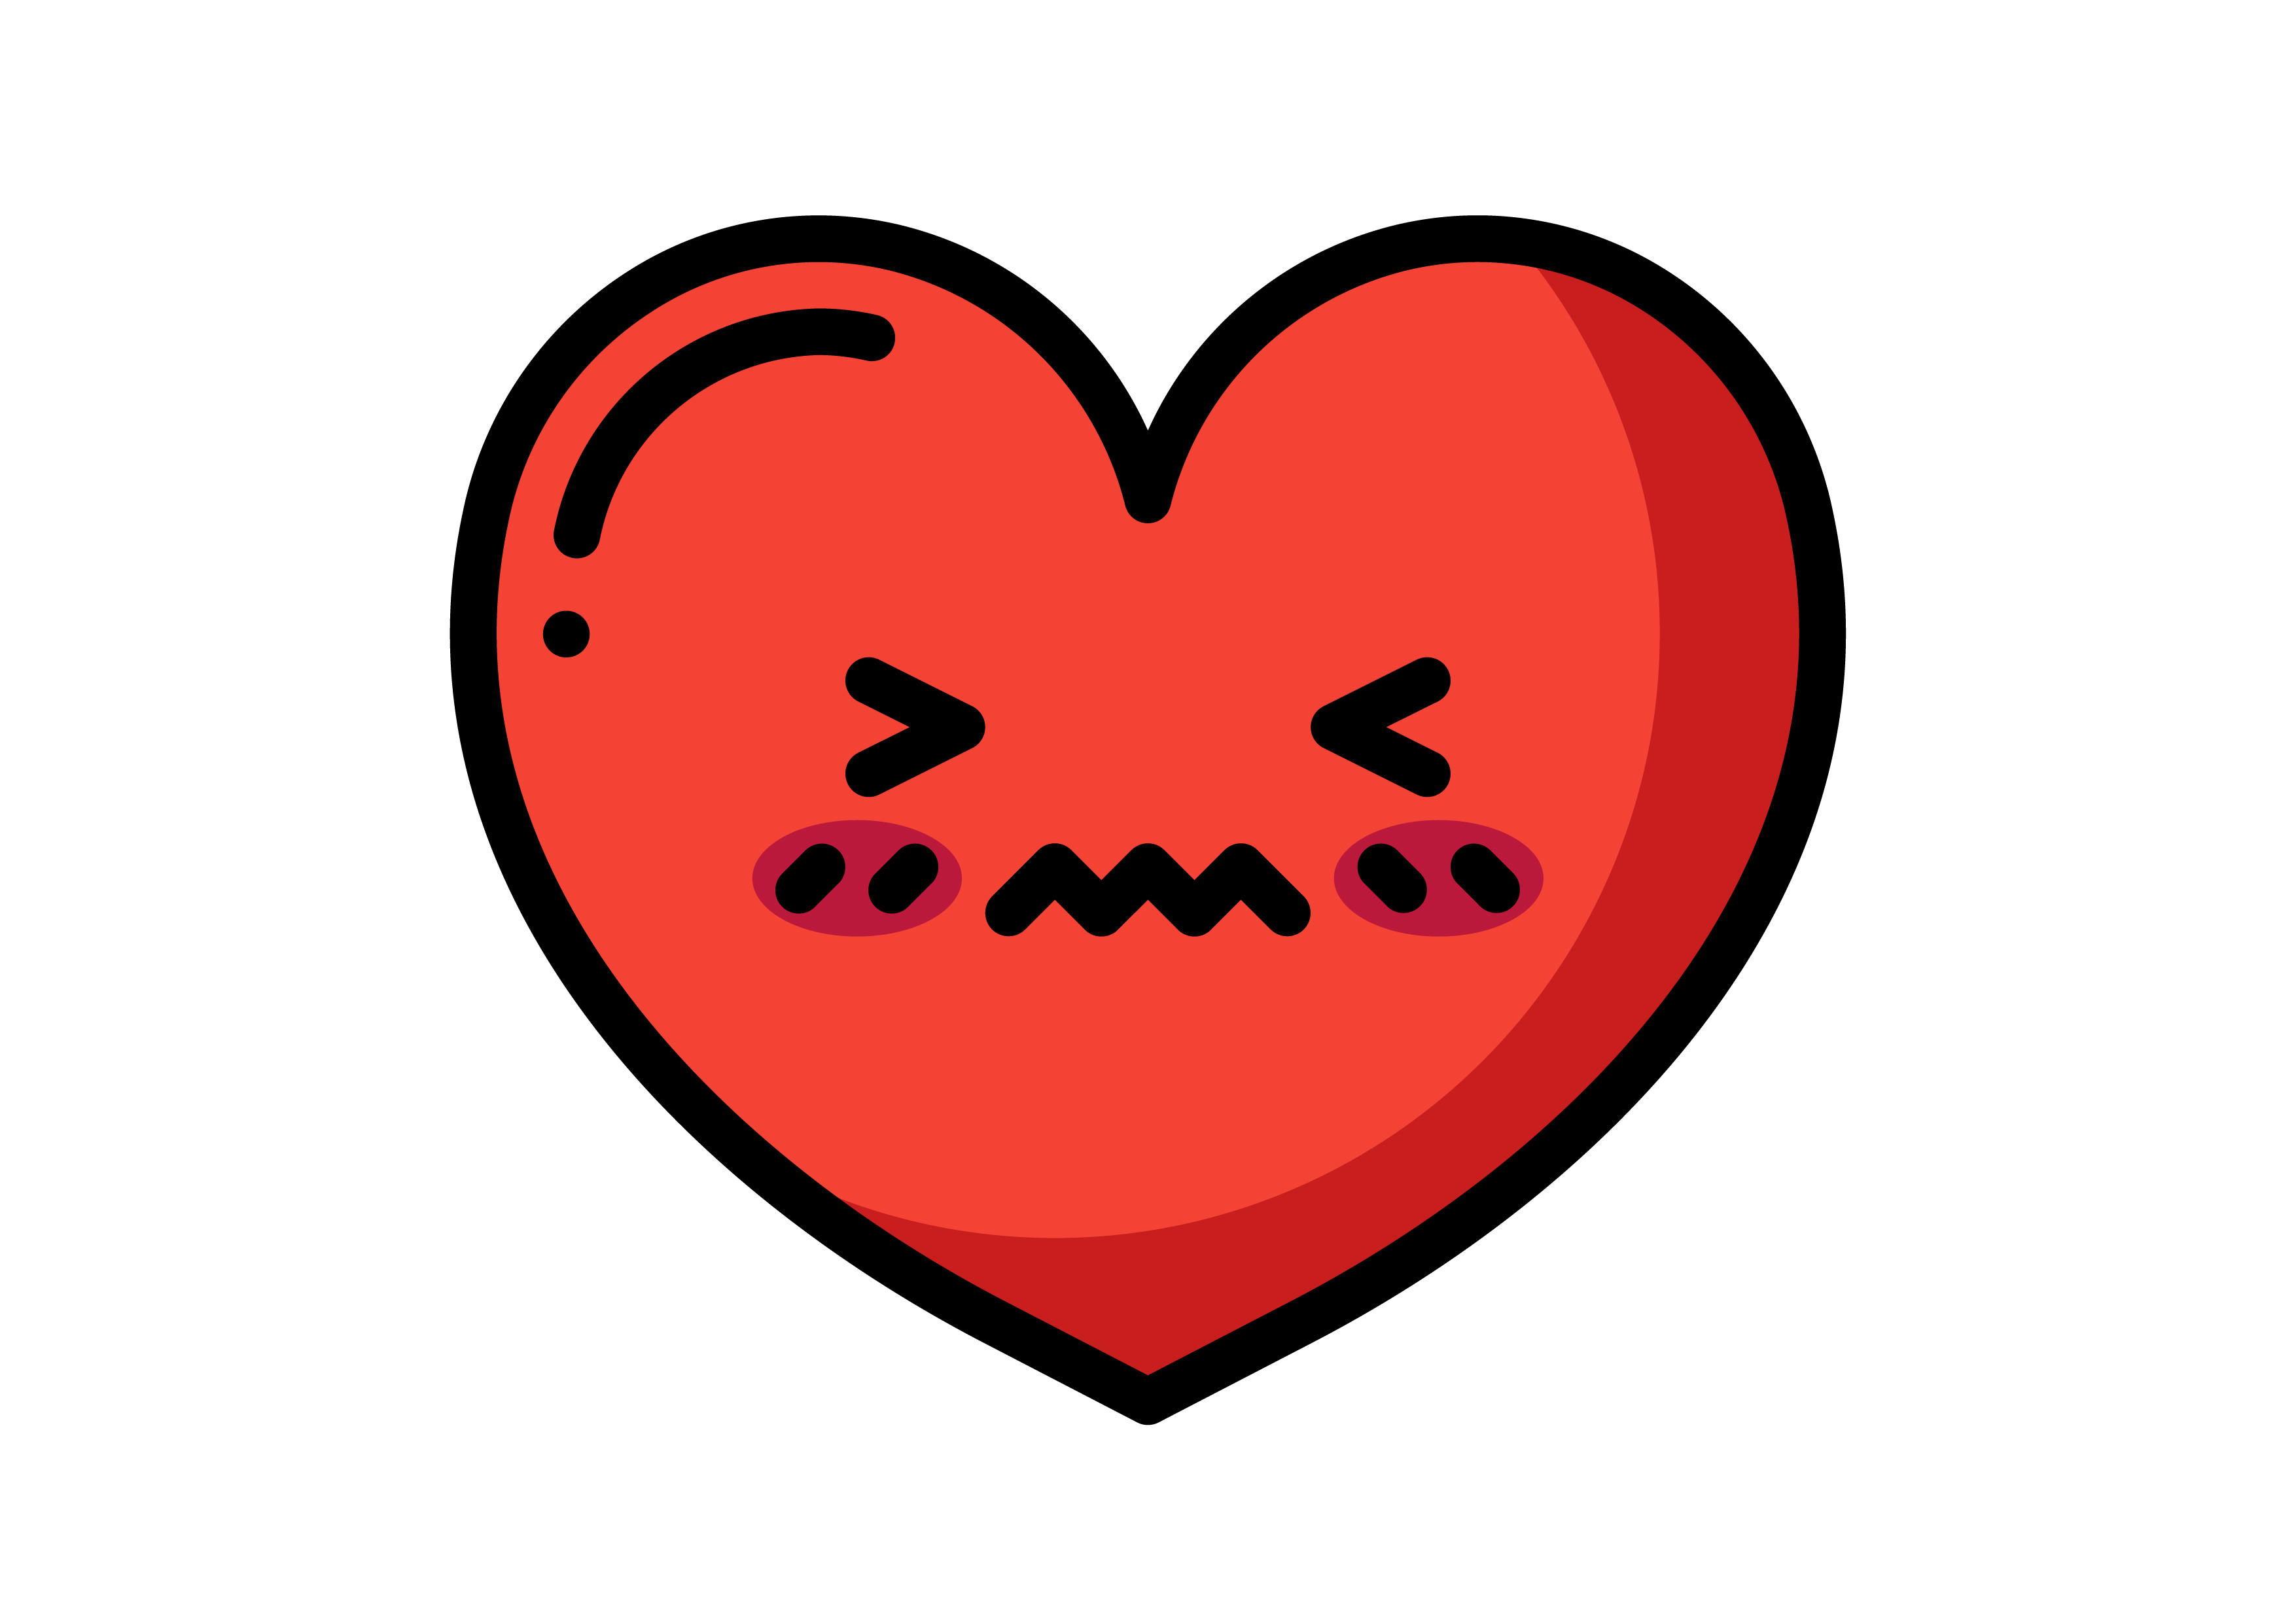 Download Free Heart Emoticons Graphic By Colorkhu123 Creative Fabrica for Cricut Explore, Silhouette and other cutting machines.